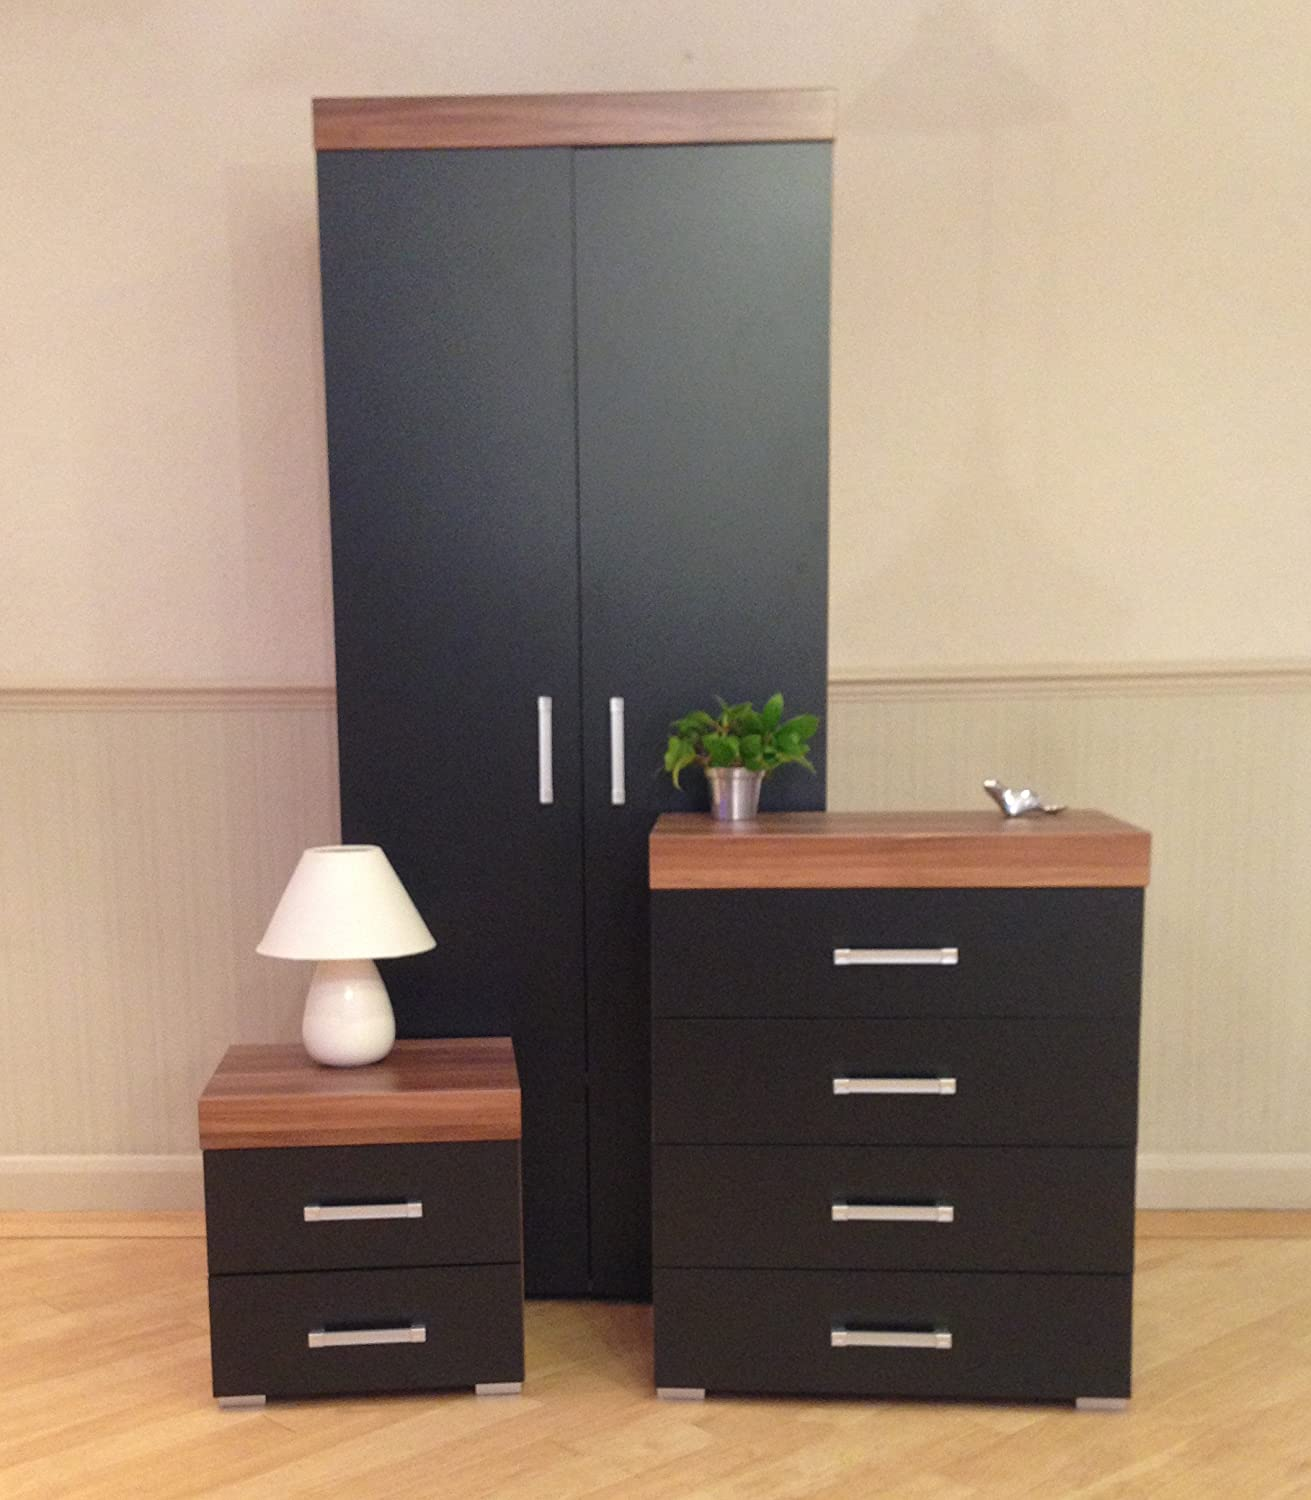 DRP Trading Bedroom Furniture Set *Black & Walnut* Wardrobe, 4 Drawer Chest & 2 Draw Bedside Cabinet